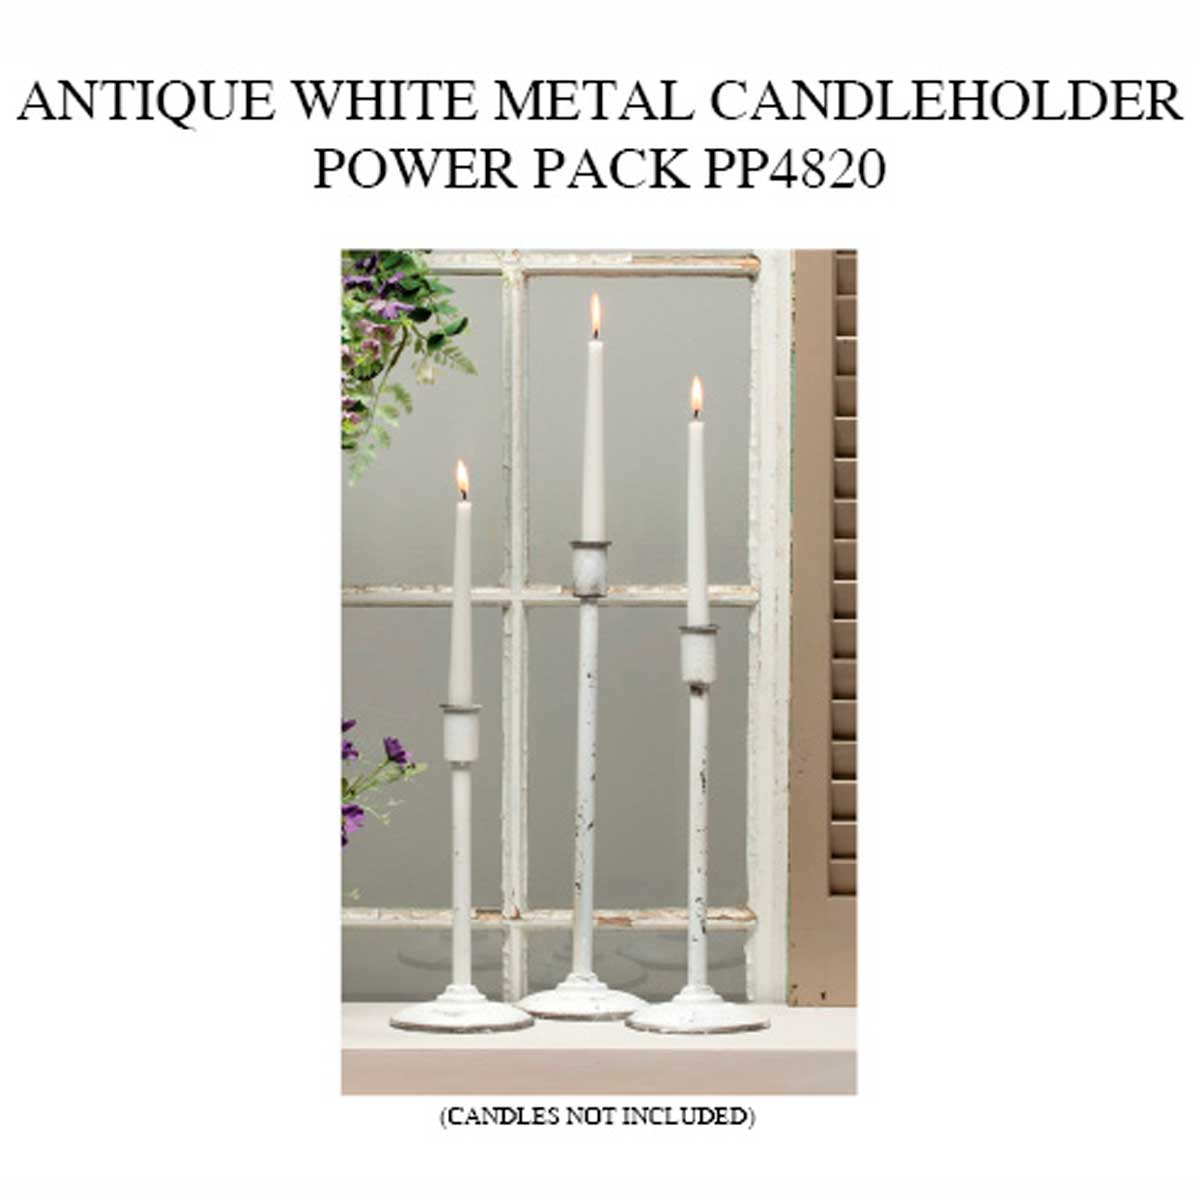 METAL COTTAGE ANTIQUE WHITE CANDLEHOLDER POWER PACK 6 UNITS